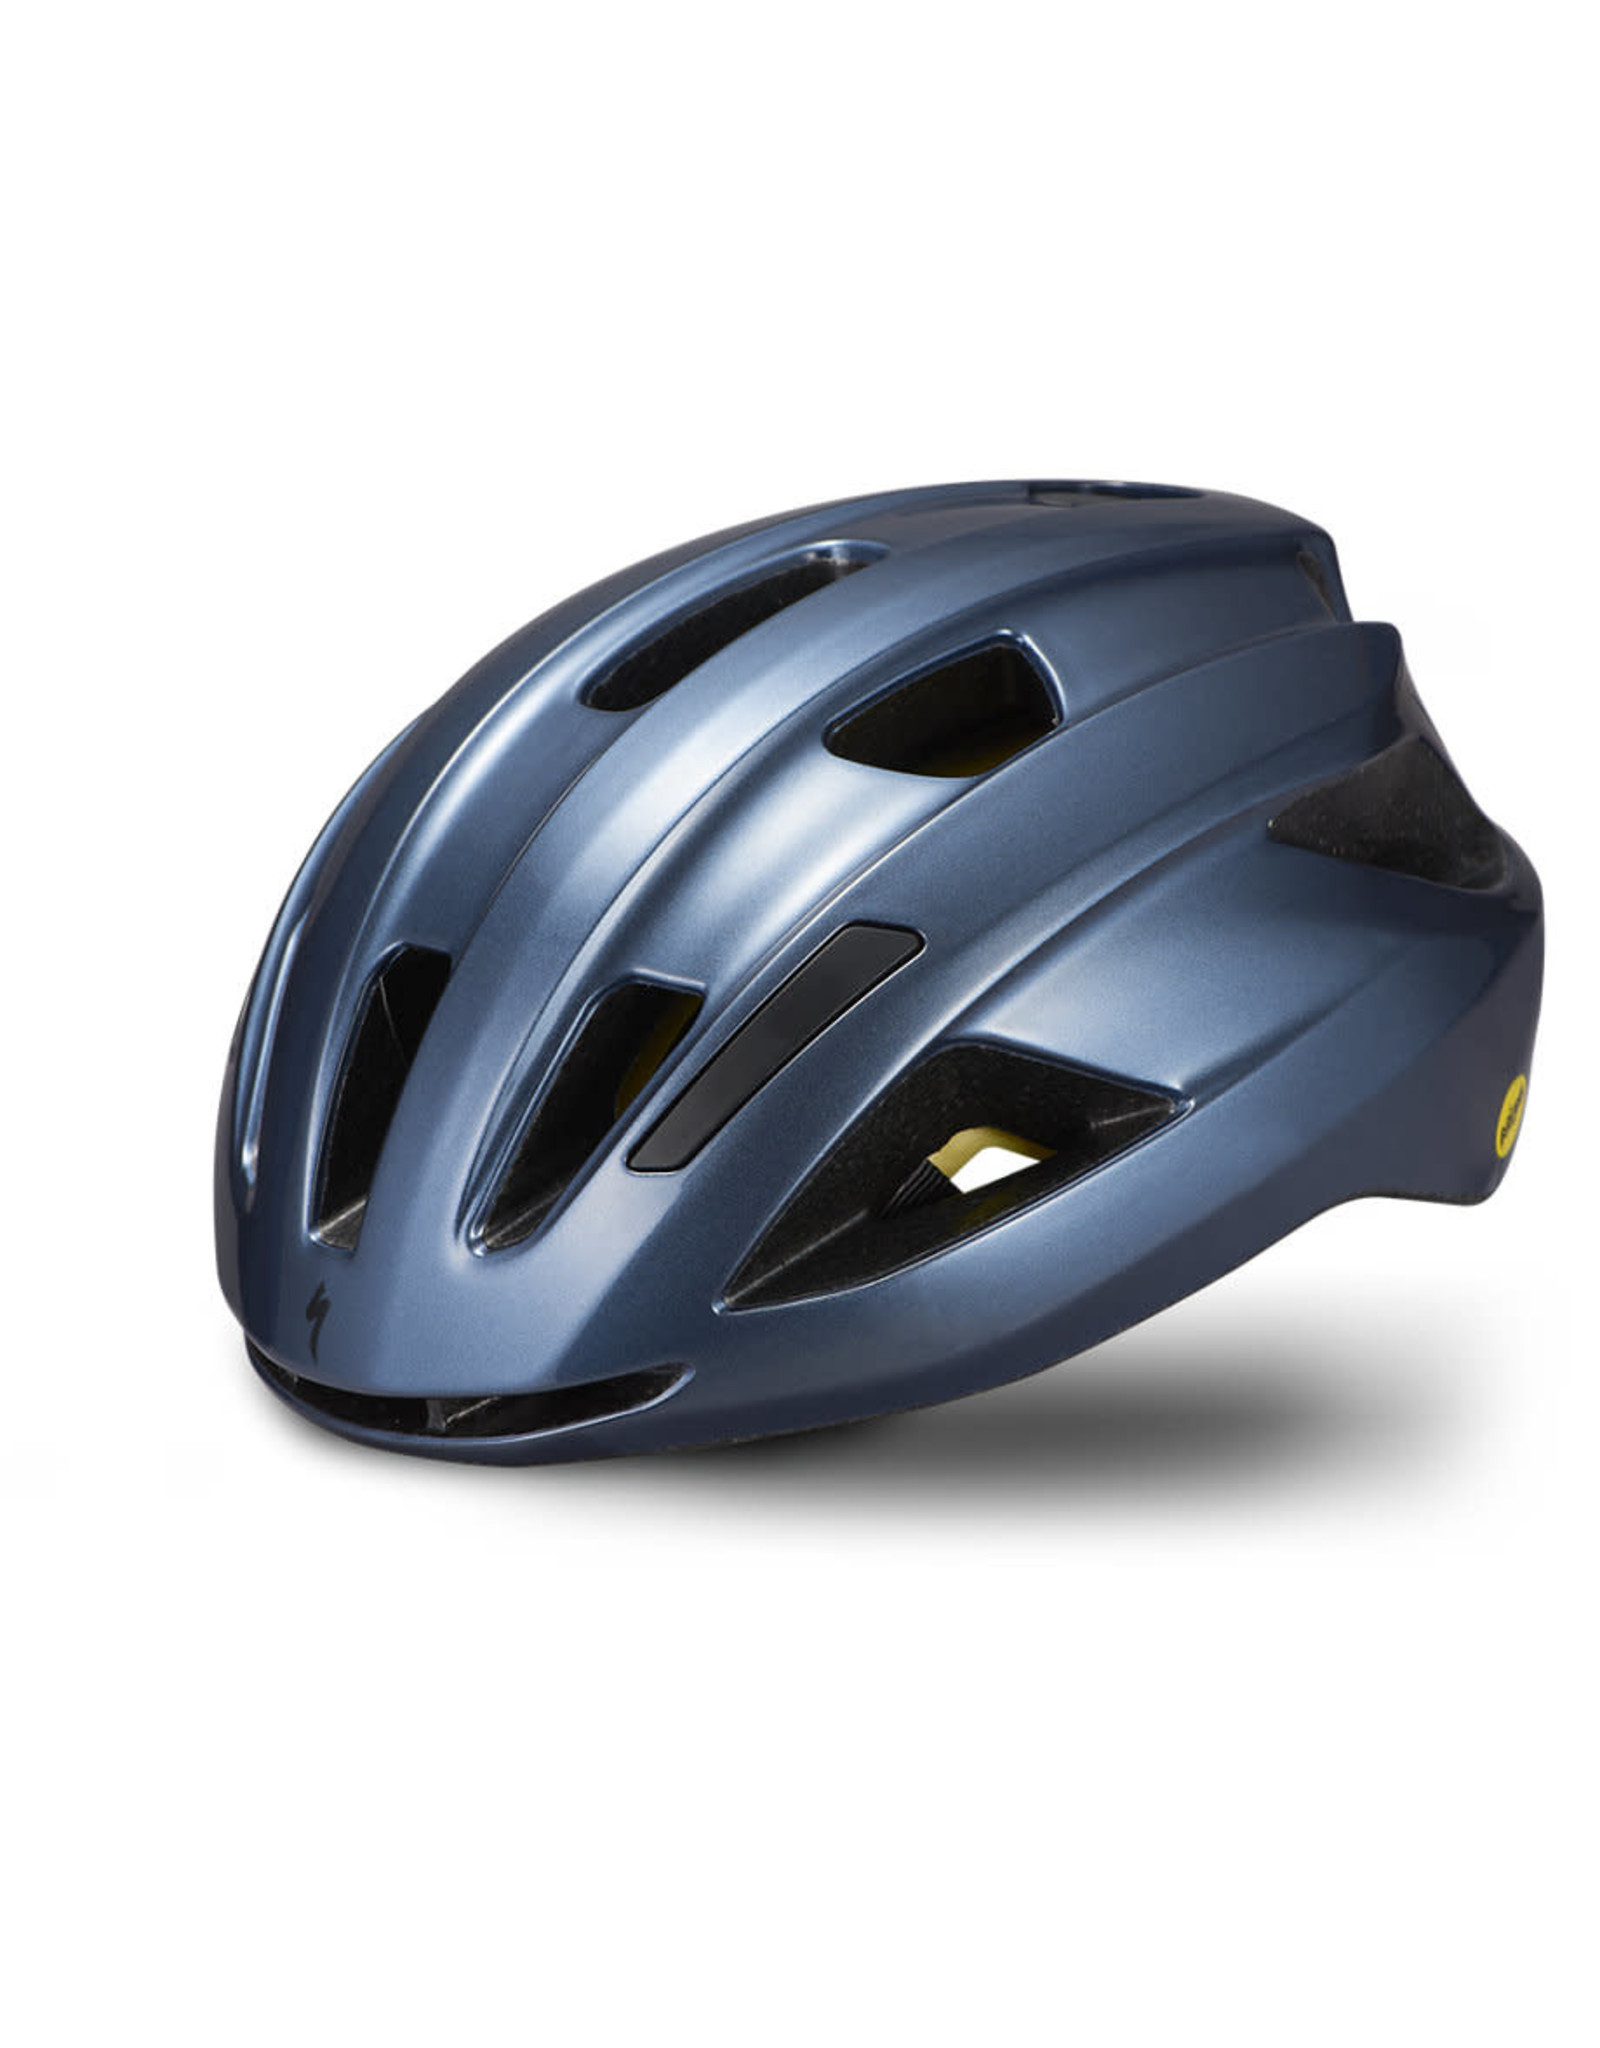 Specialized Specialized Align II Helmet MIPS Cast Blue/Black Reflective M/L